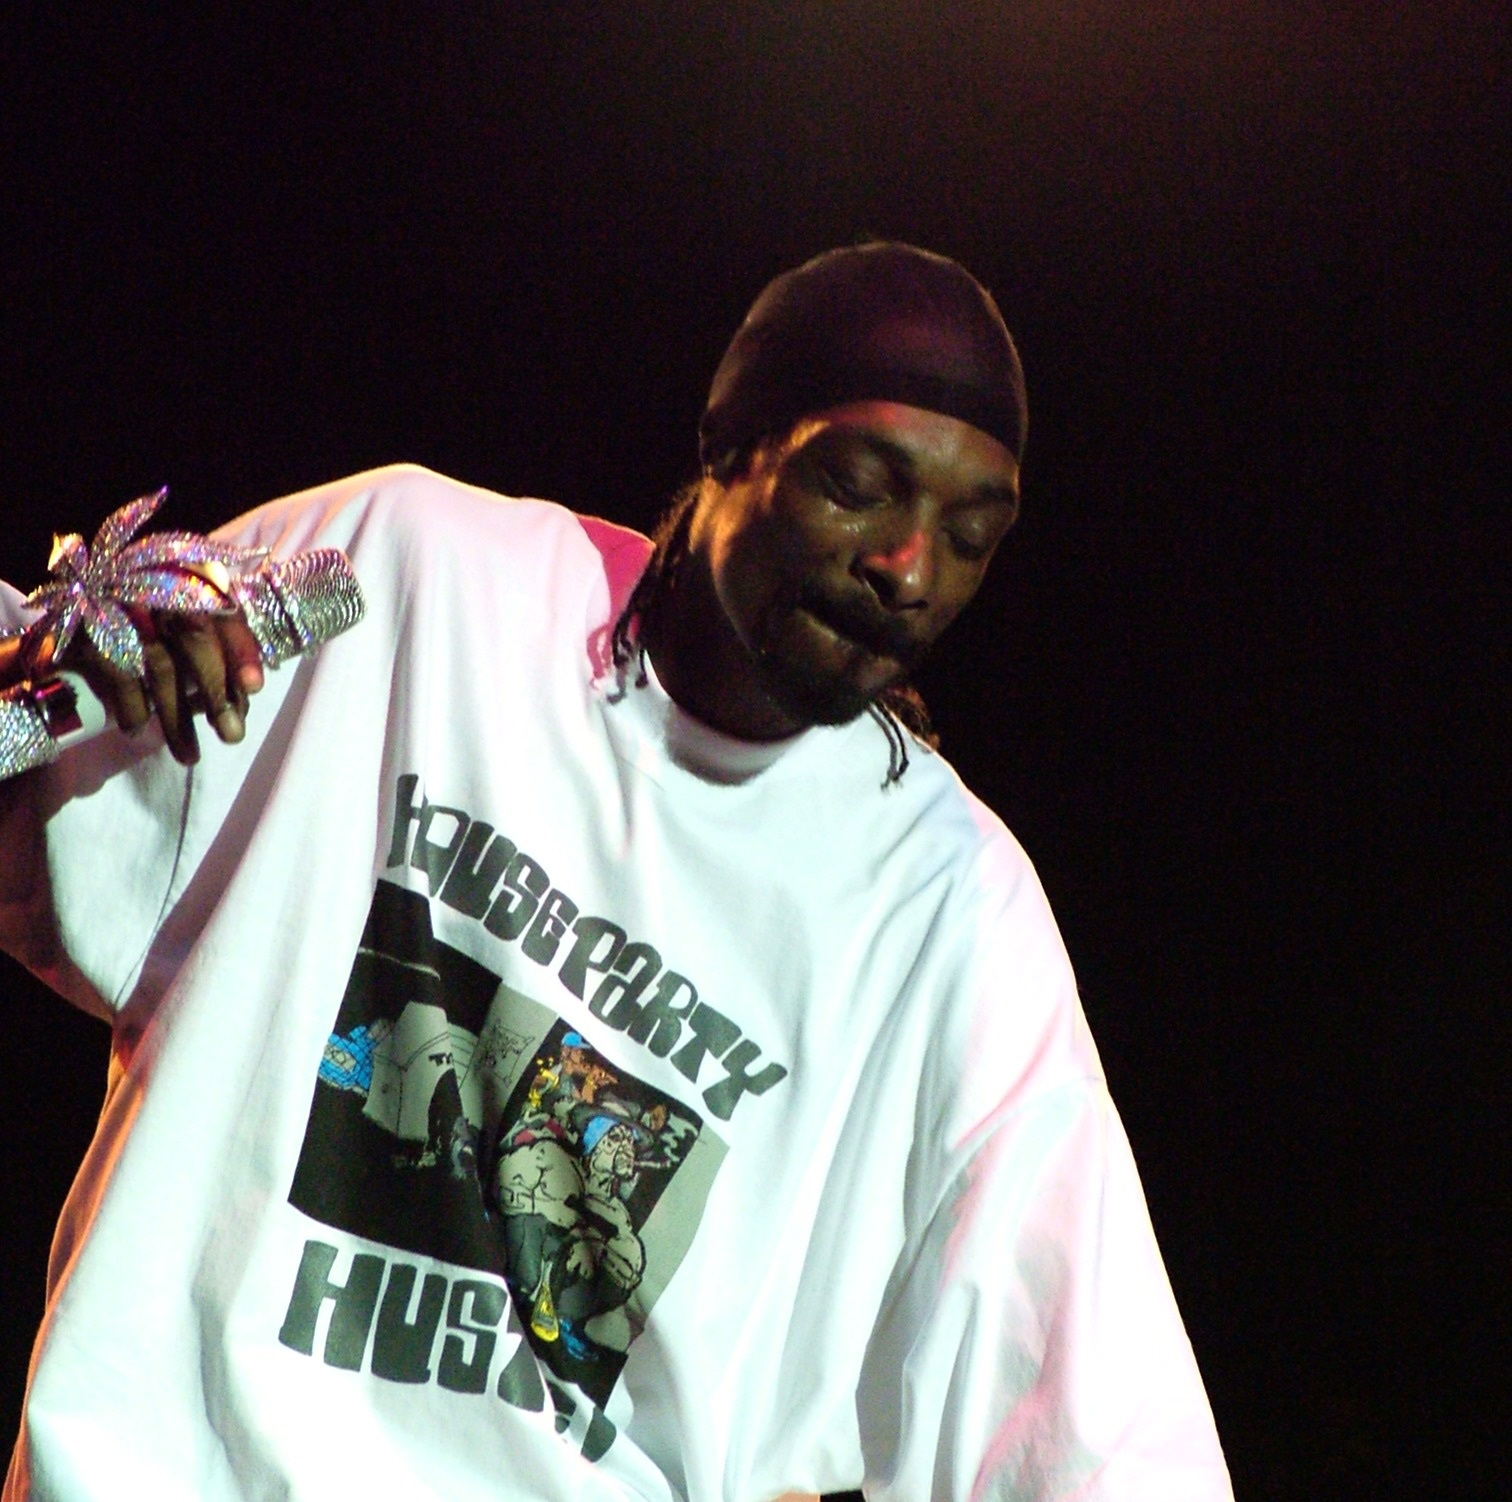 Snoop_Dogg_at_City_Stages